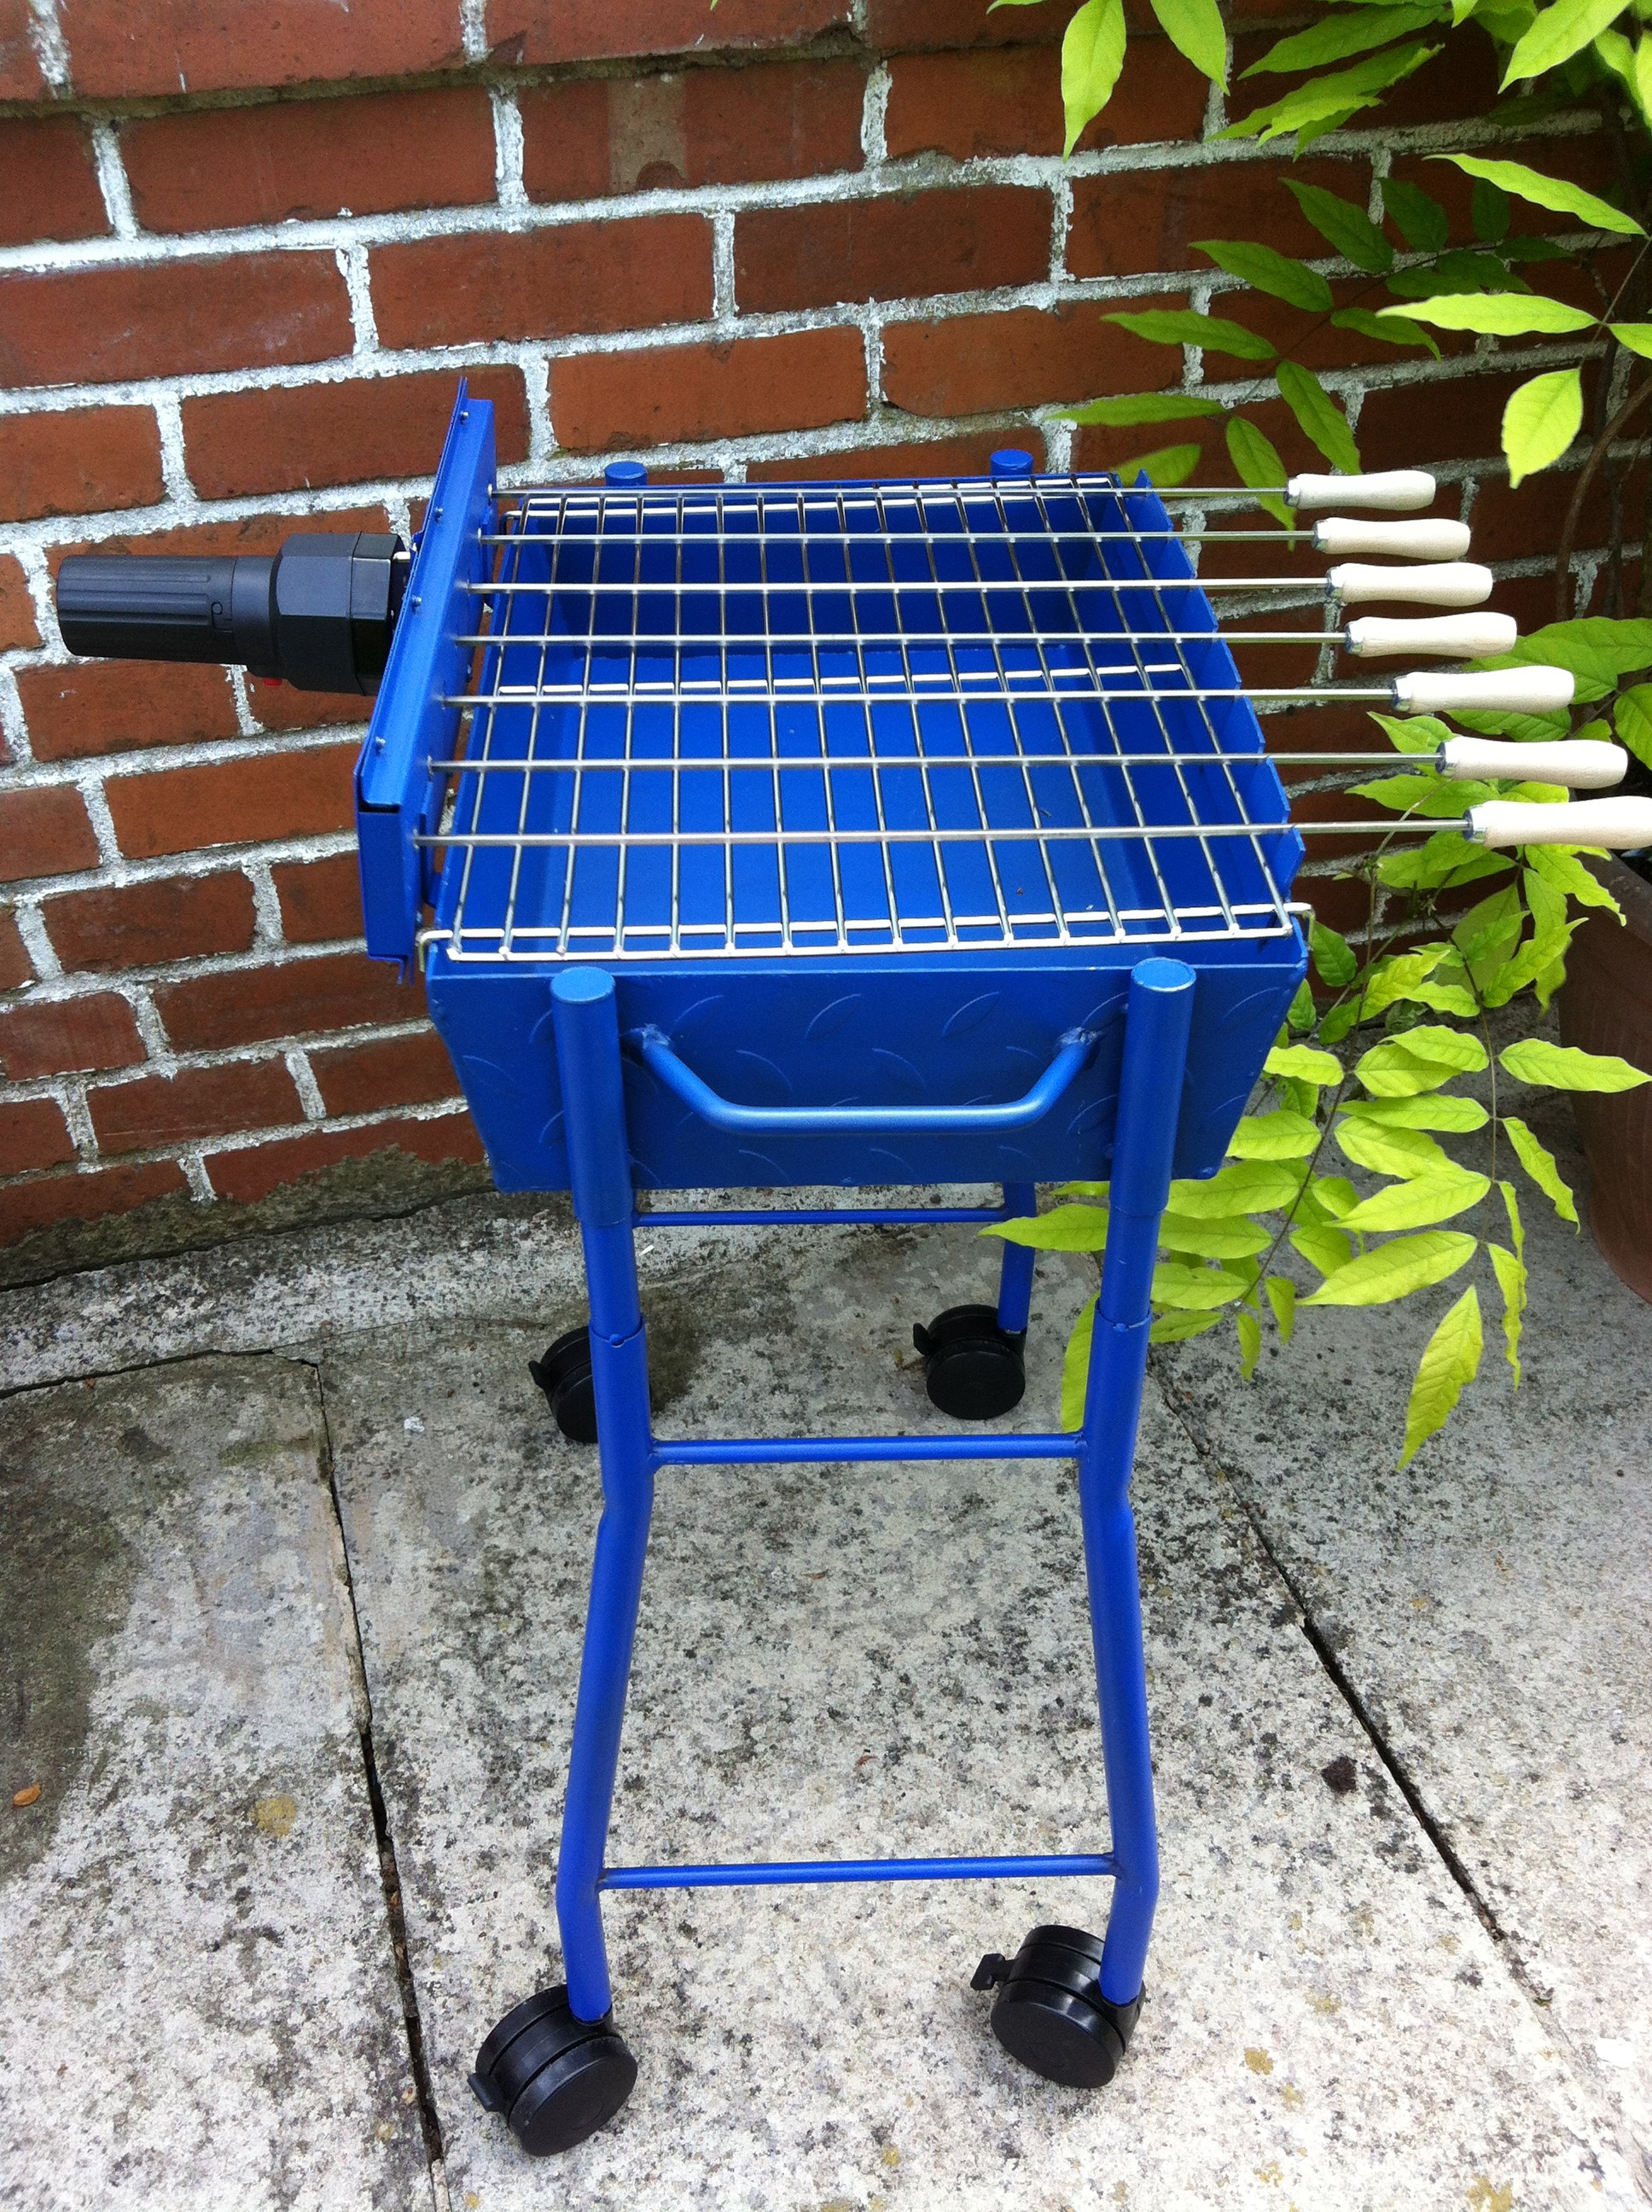 Mini Cyprus Souvlaki Blue Patio BBQ Grill Set with Motor